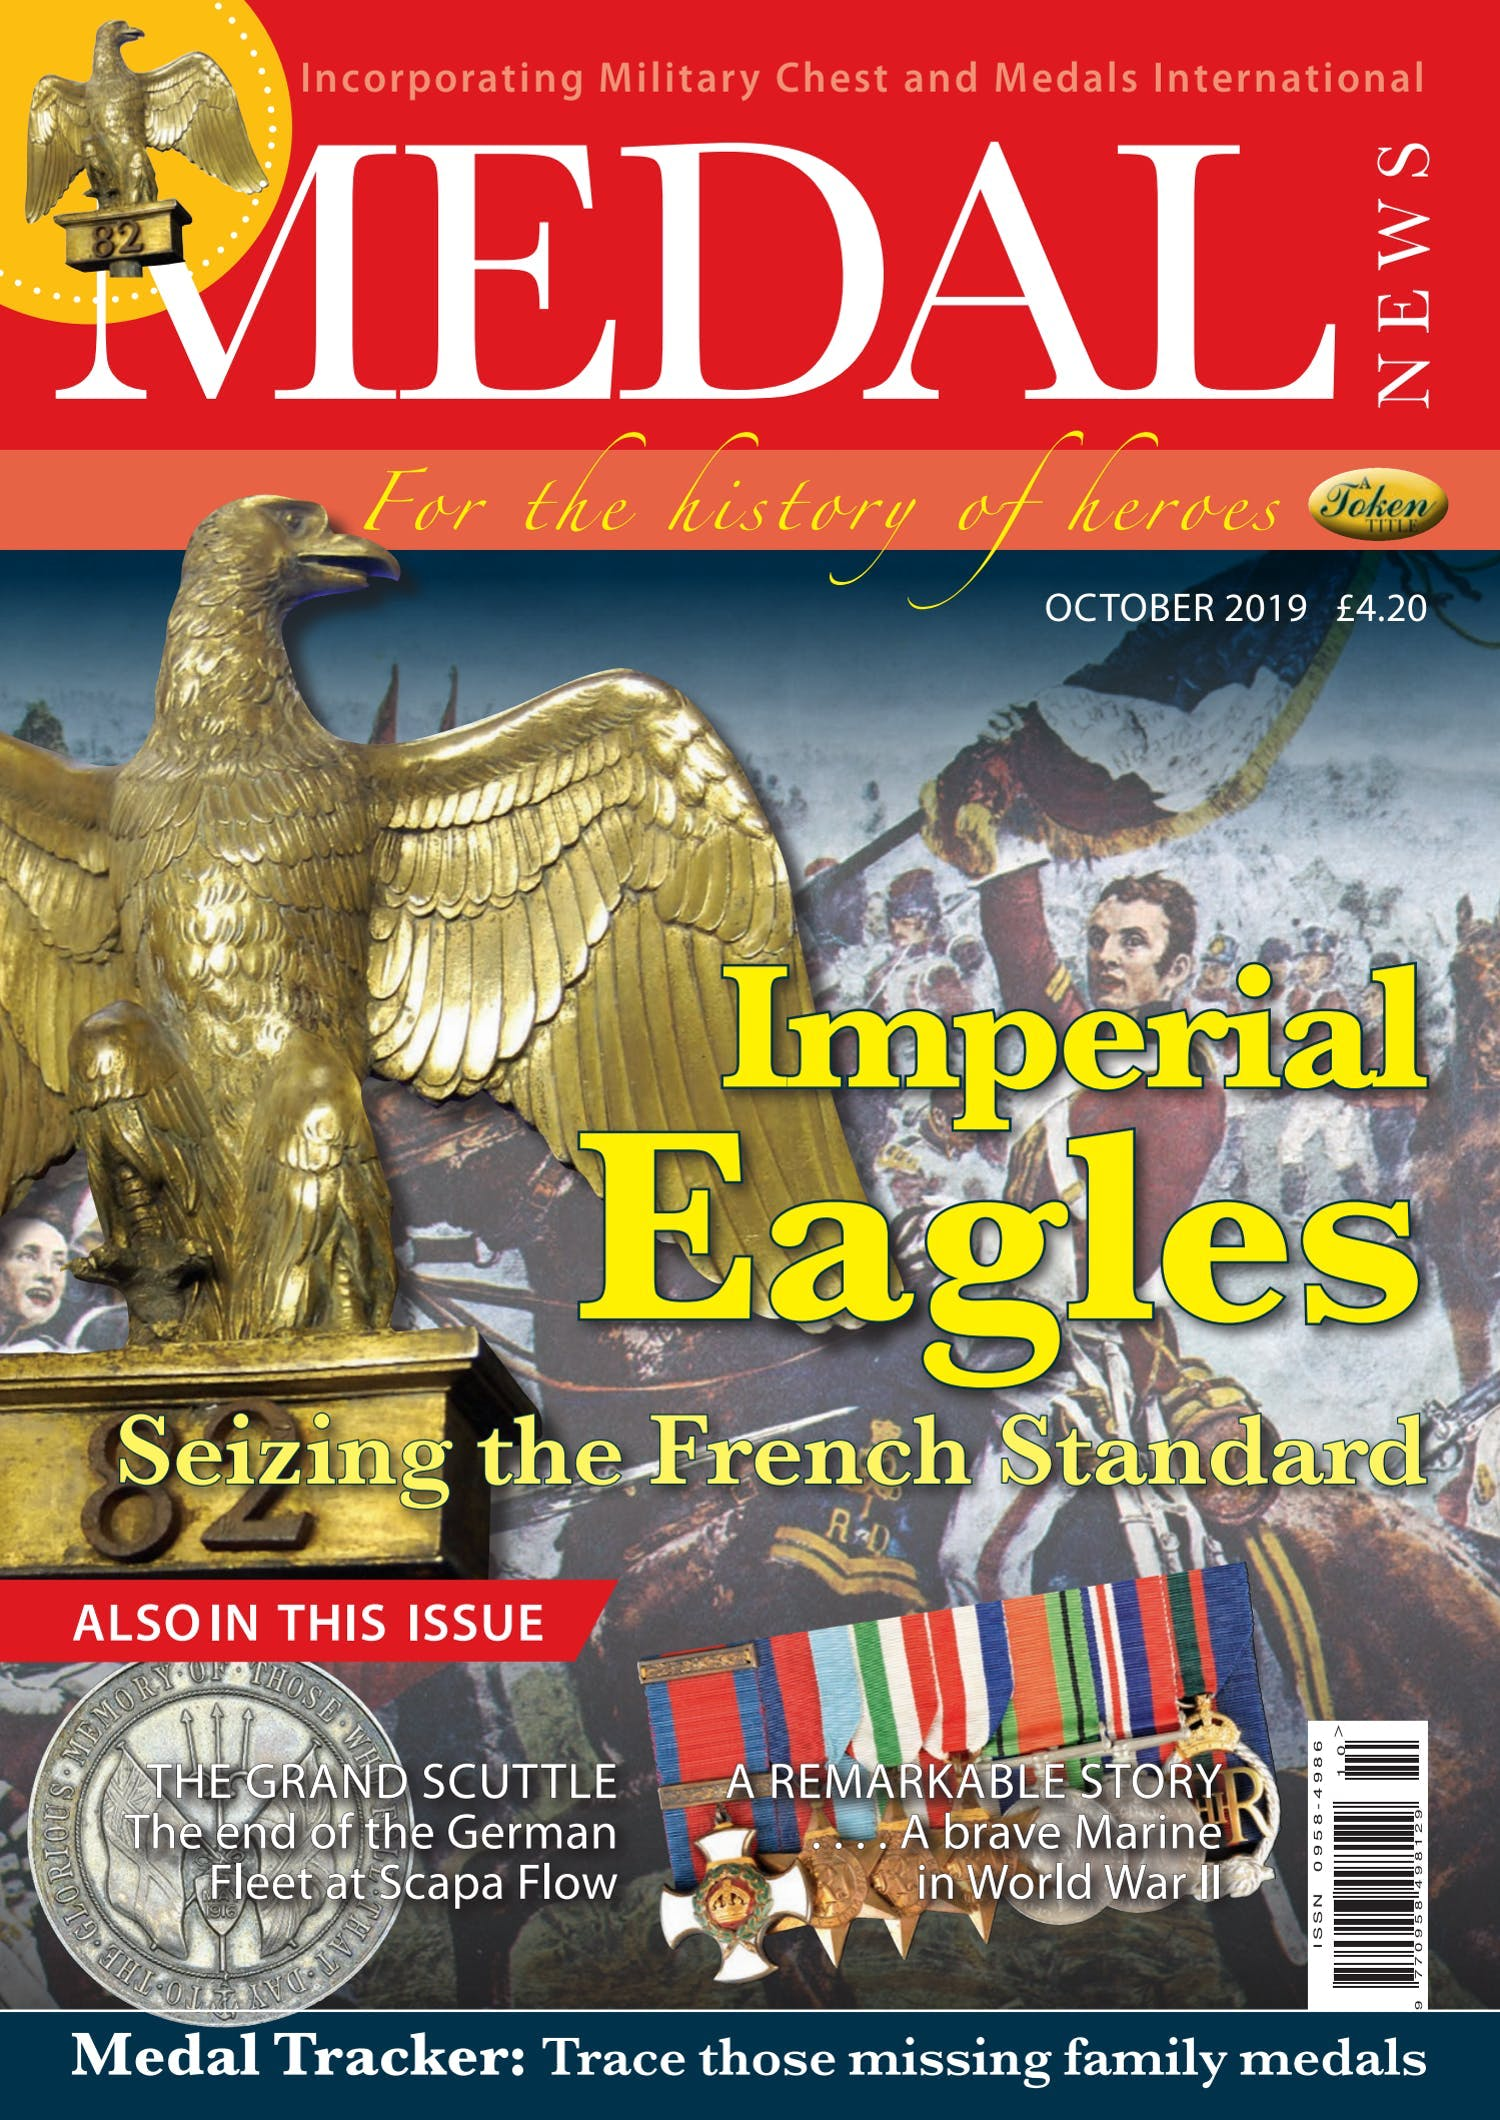 Front cover of 'Imperial Eagles', Medal News October 2019, Volume 57, Number 9 by Token Publishing